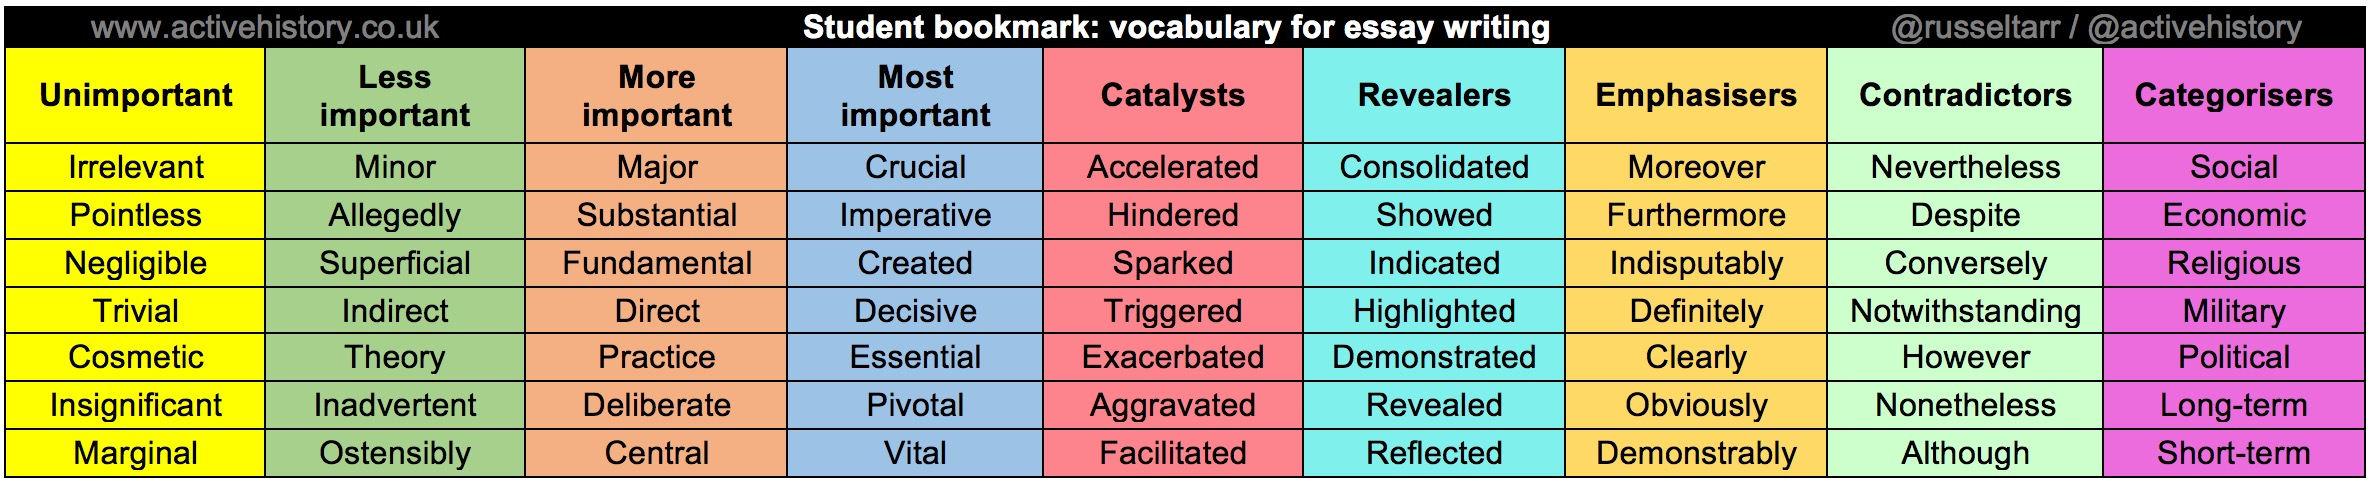 Student bookmark: Vocabulary for essay writing